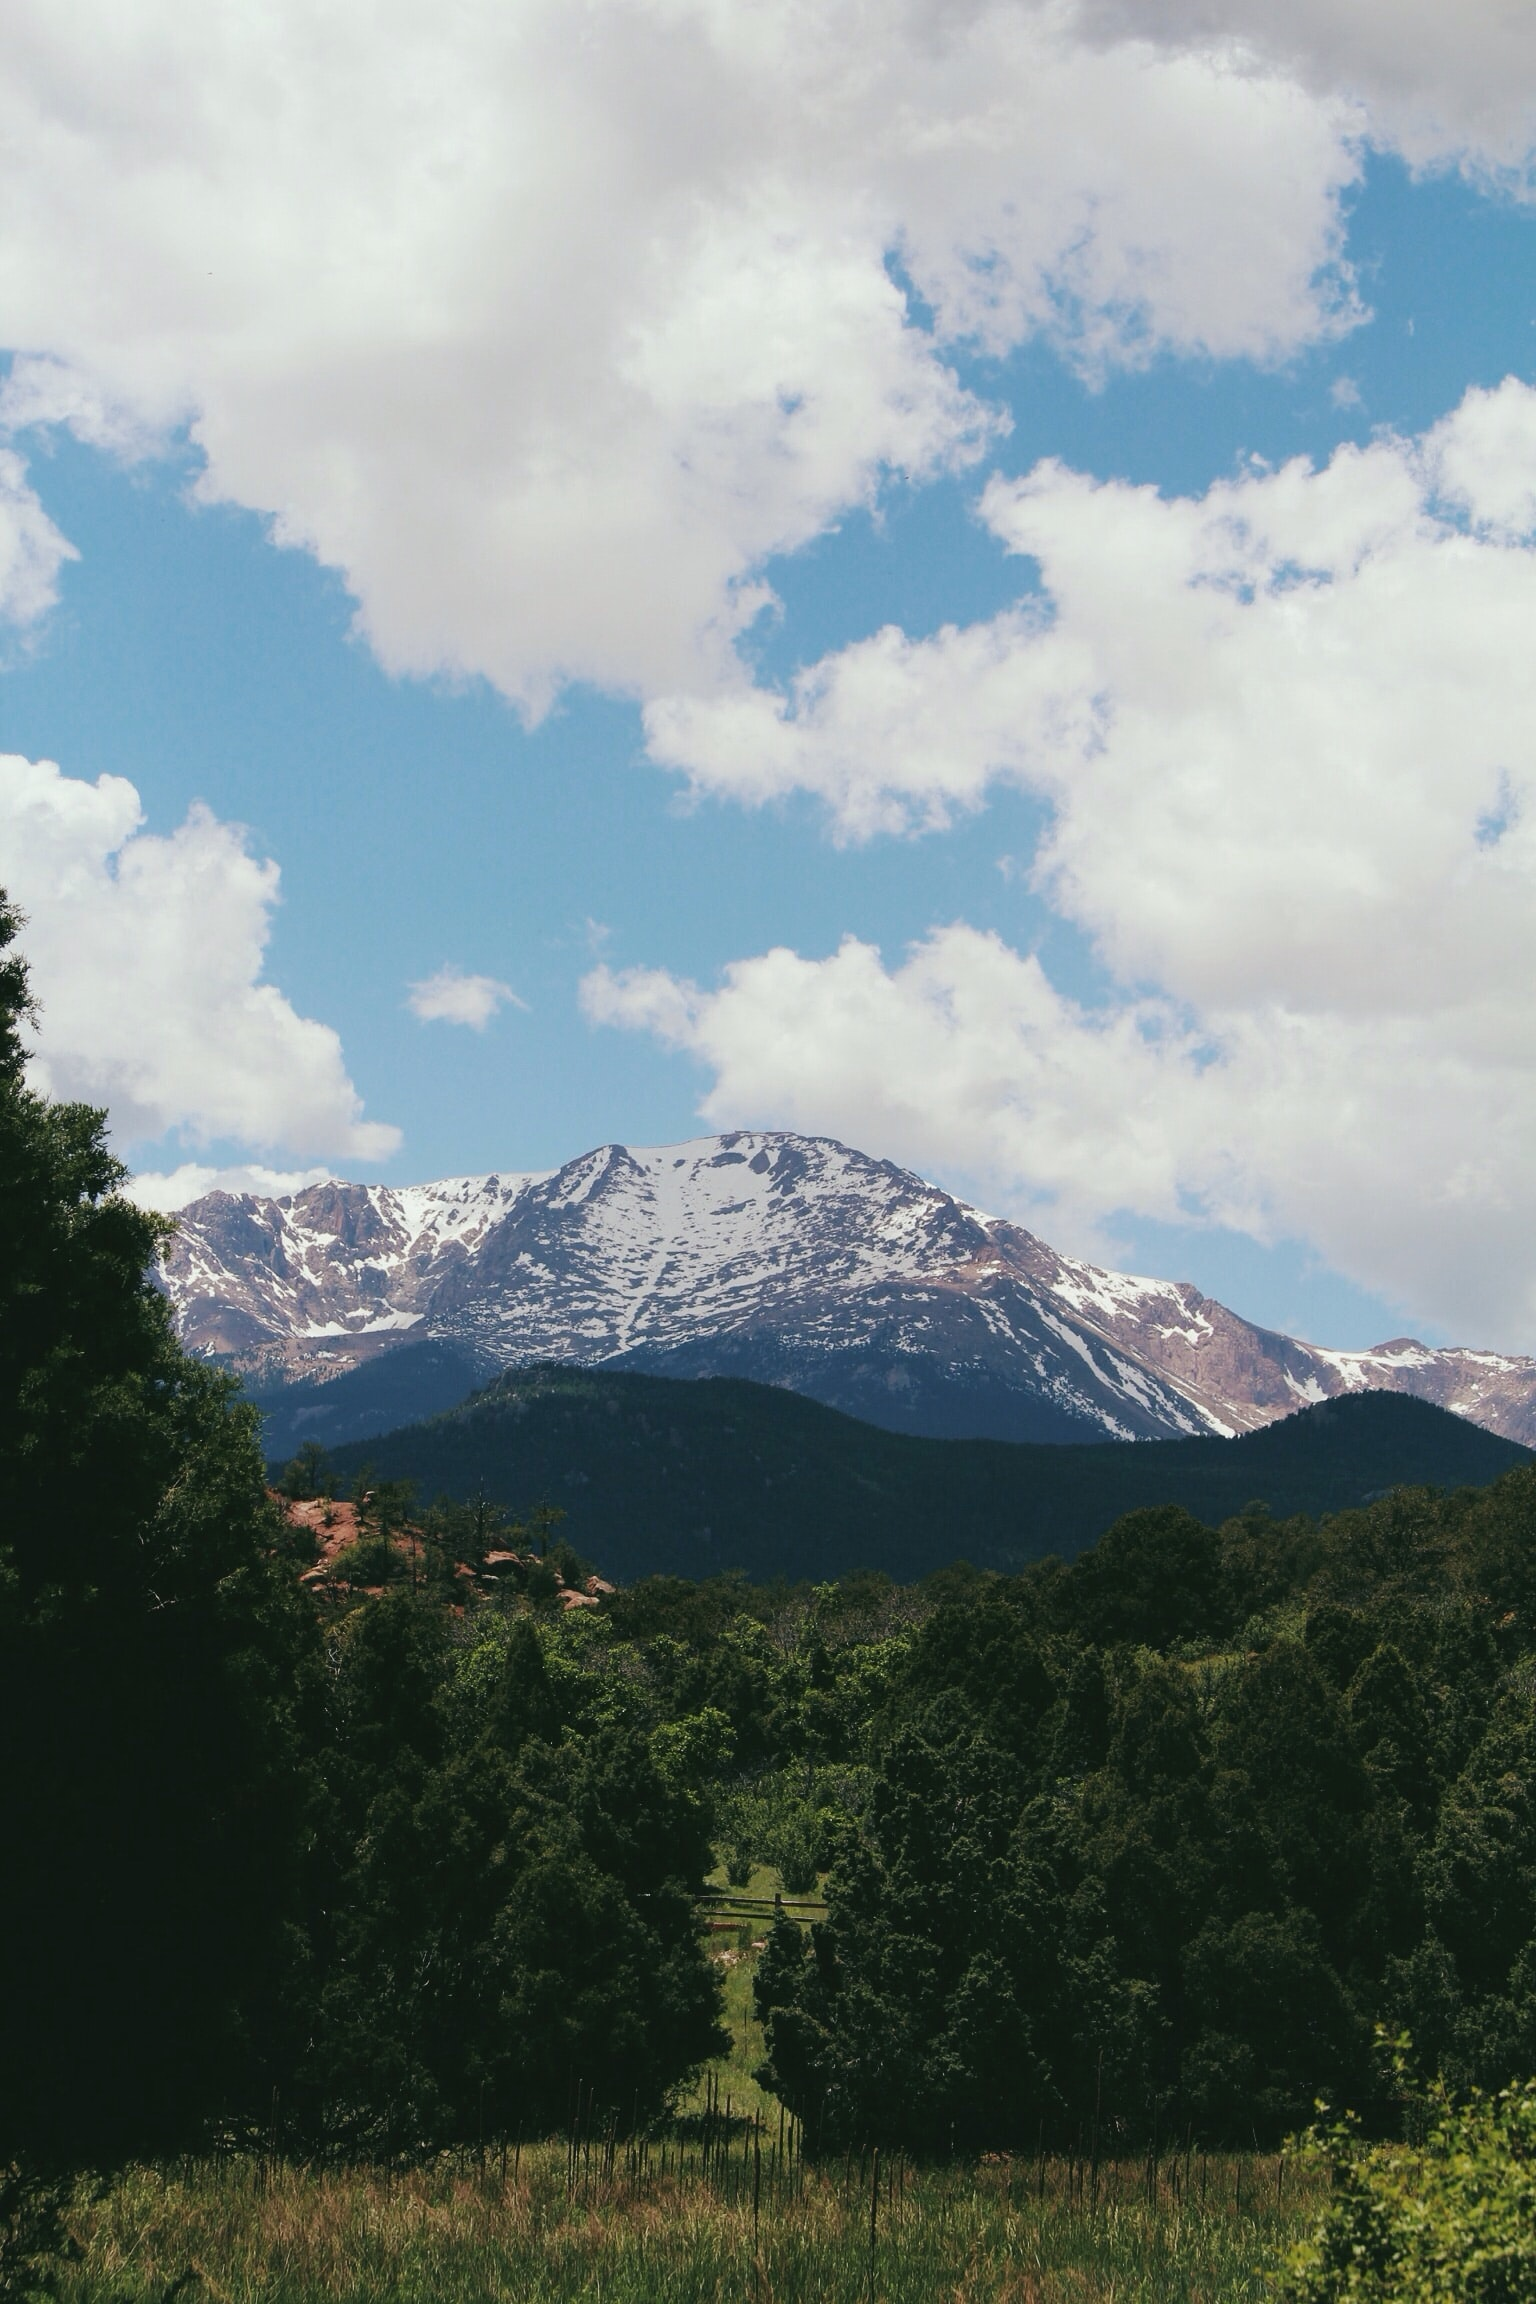 A tall snowy mountain towering over green countryside